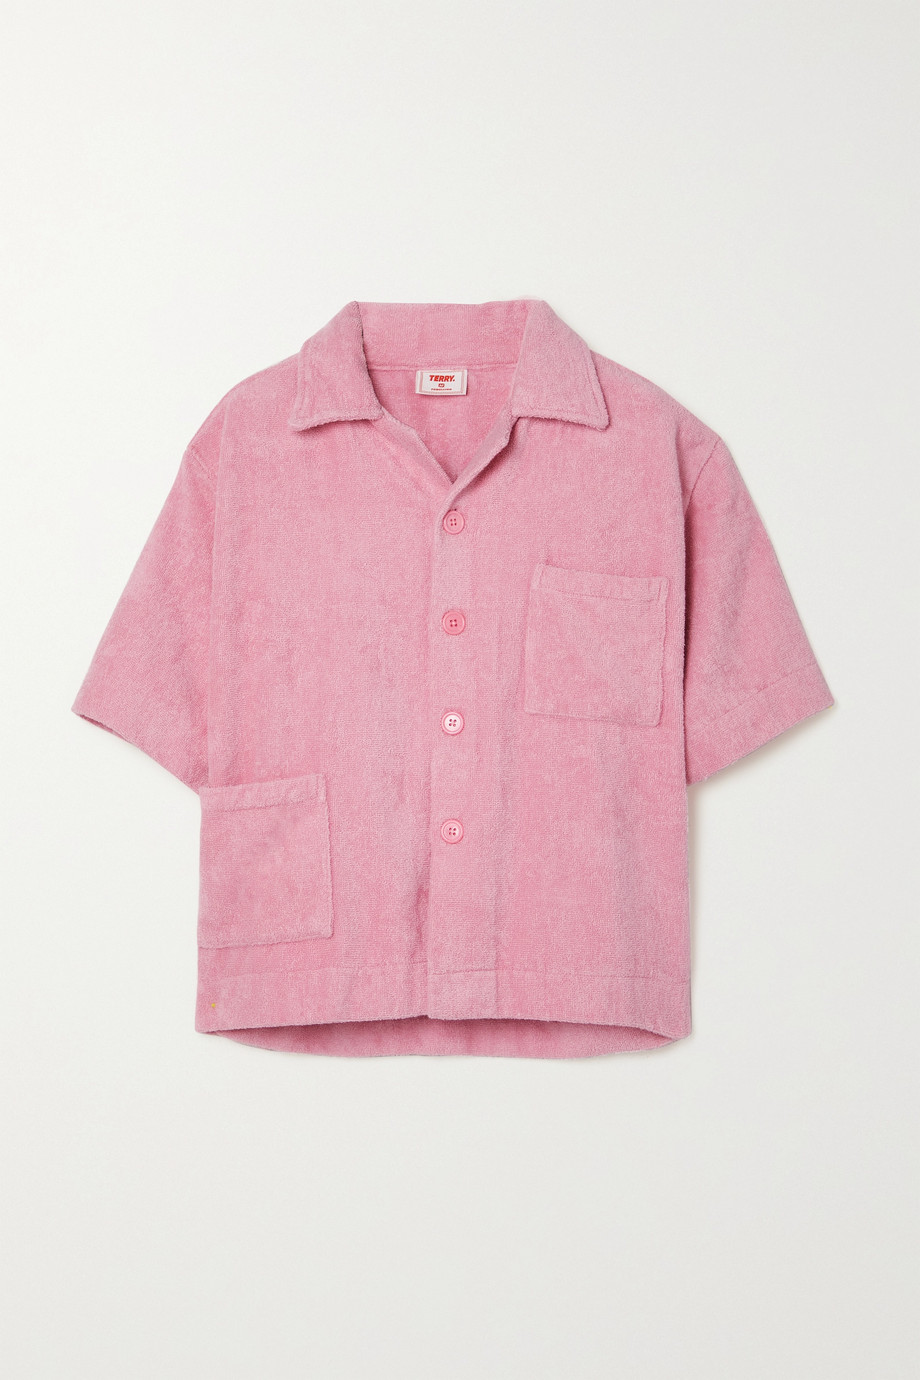 TERRY Boxy cotton-terry shirt